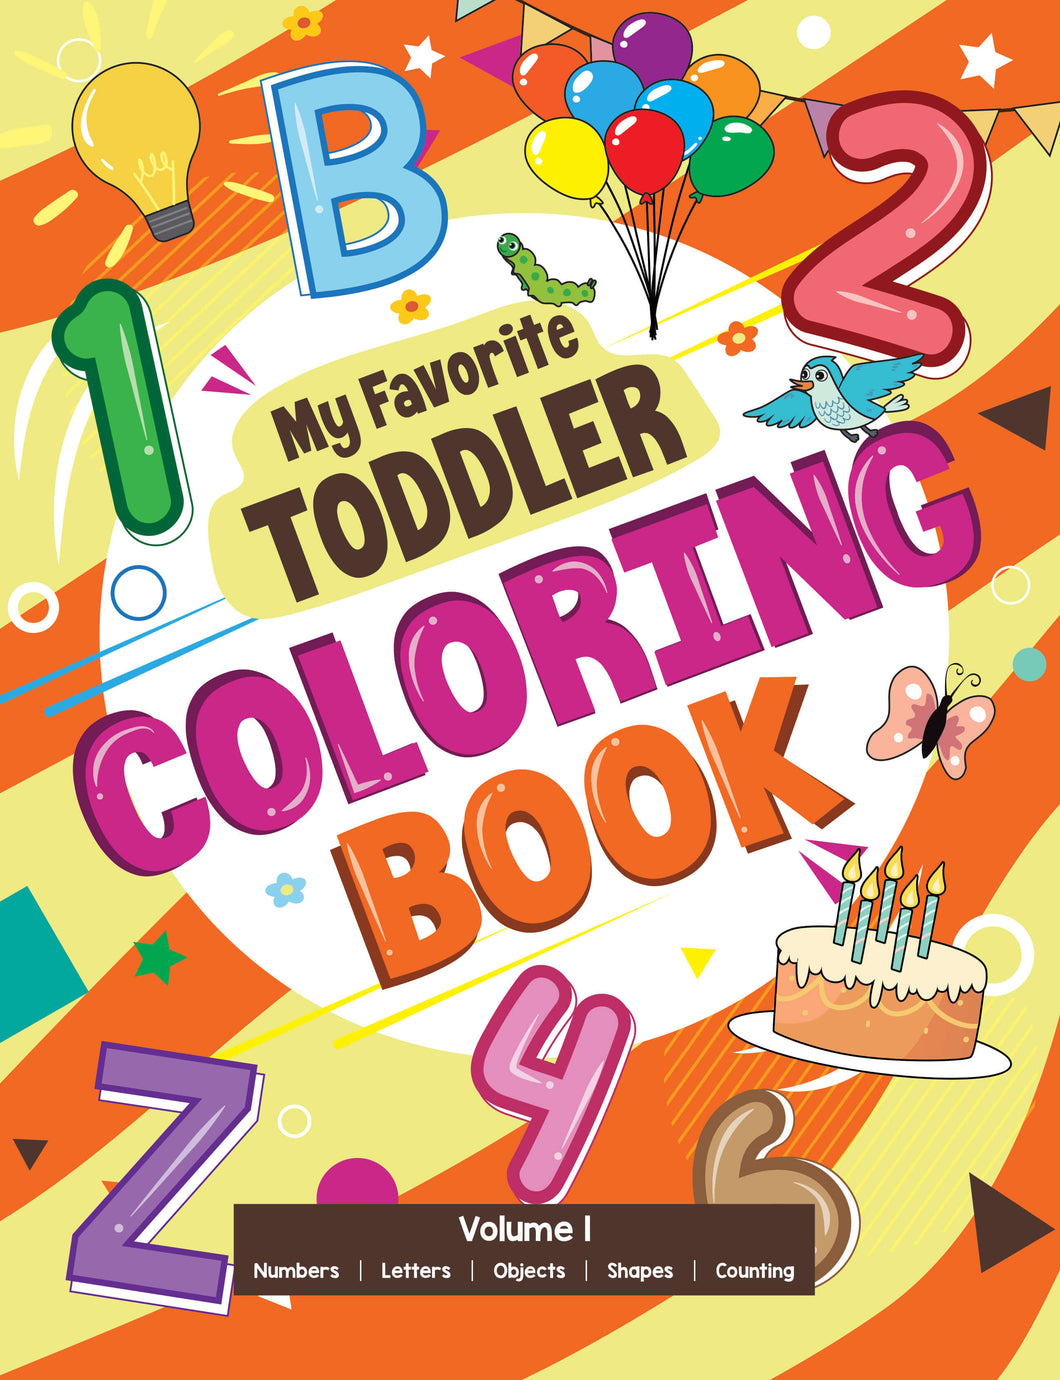 My Favorite Toddler Coloring Book Volume 1 Digital Edition